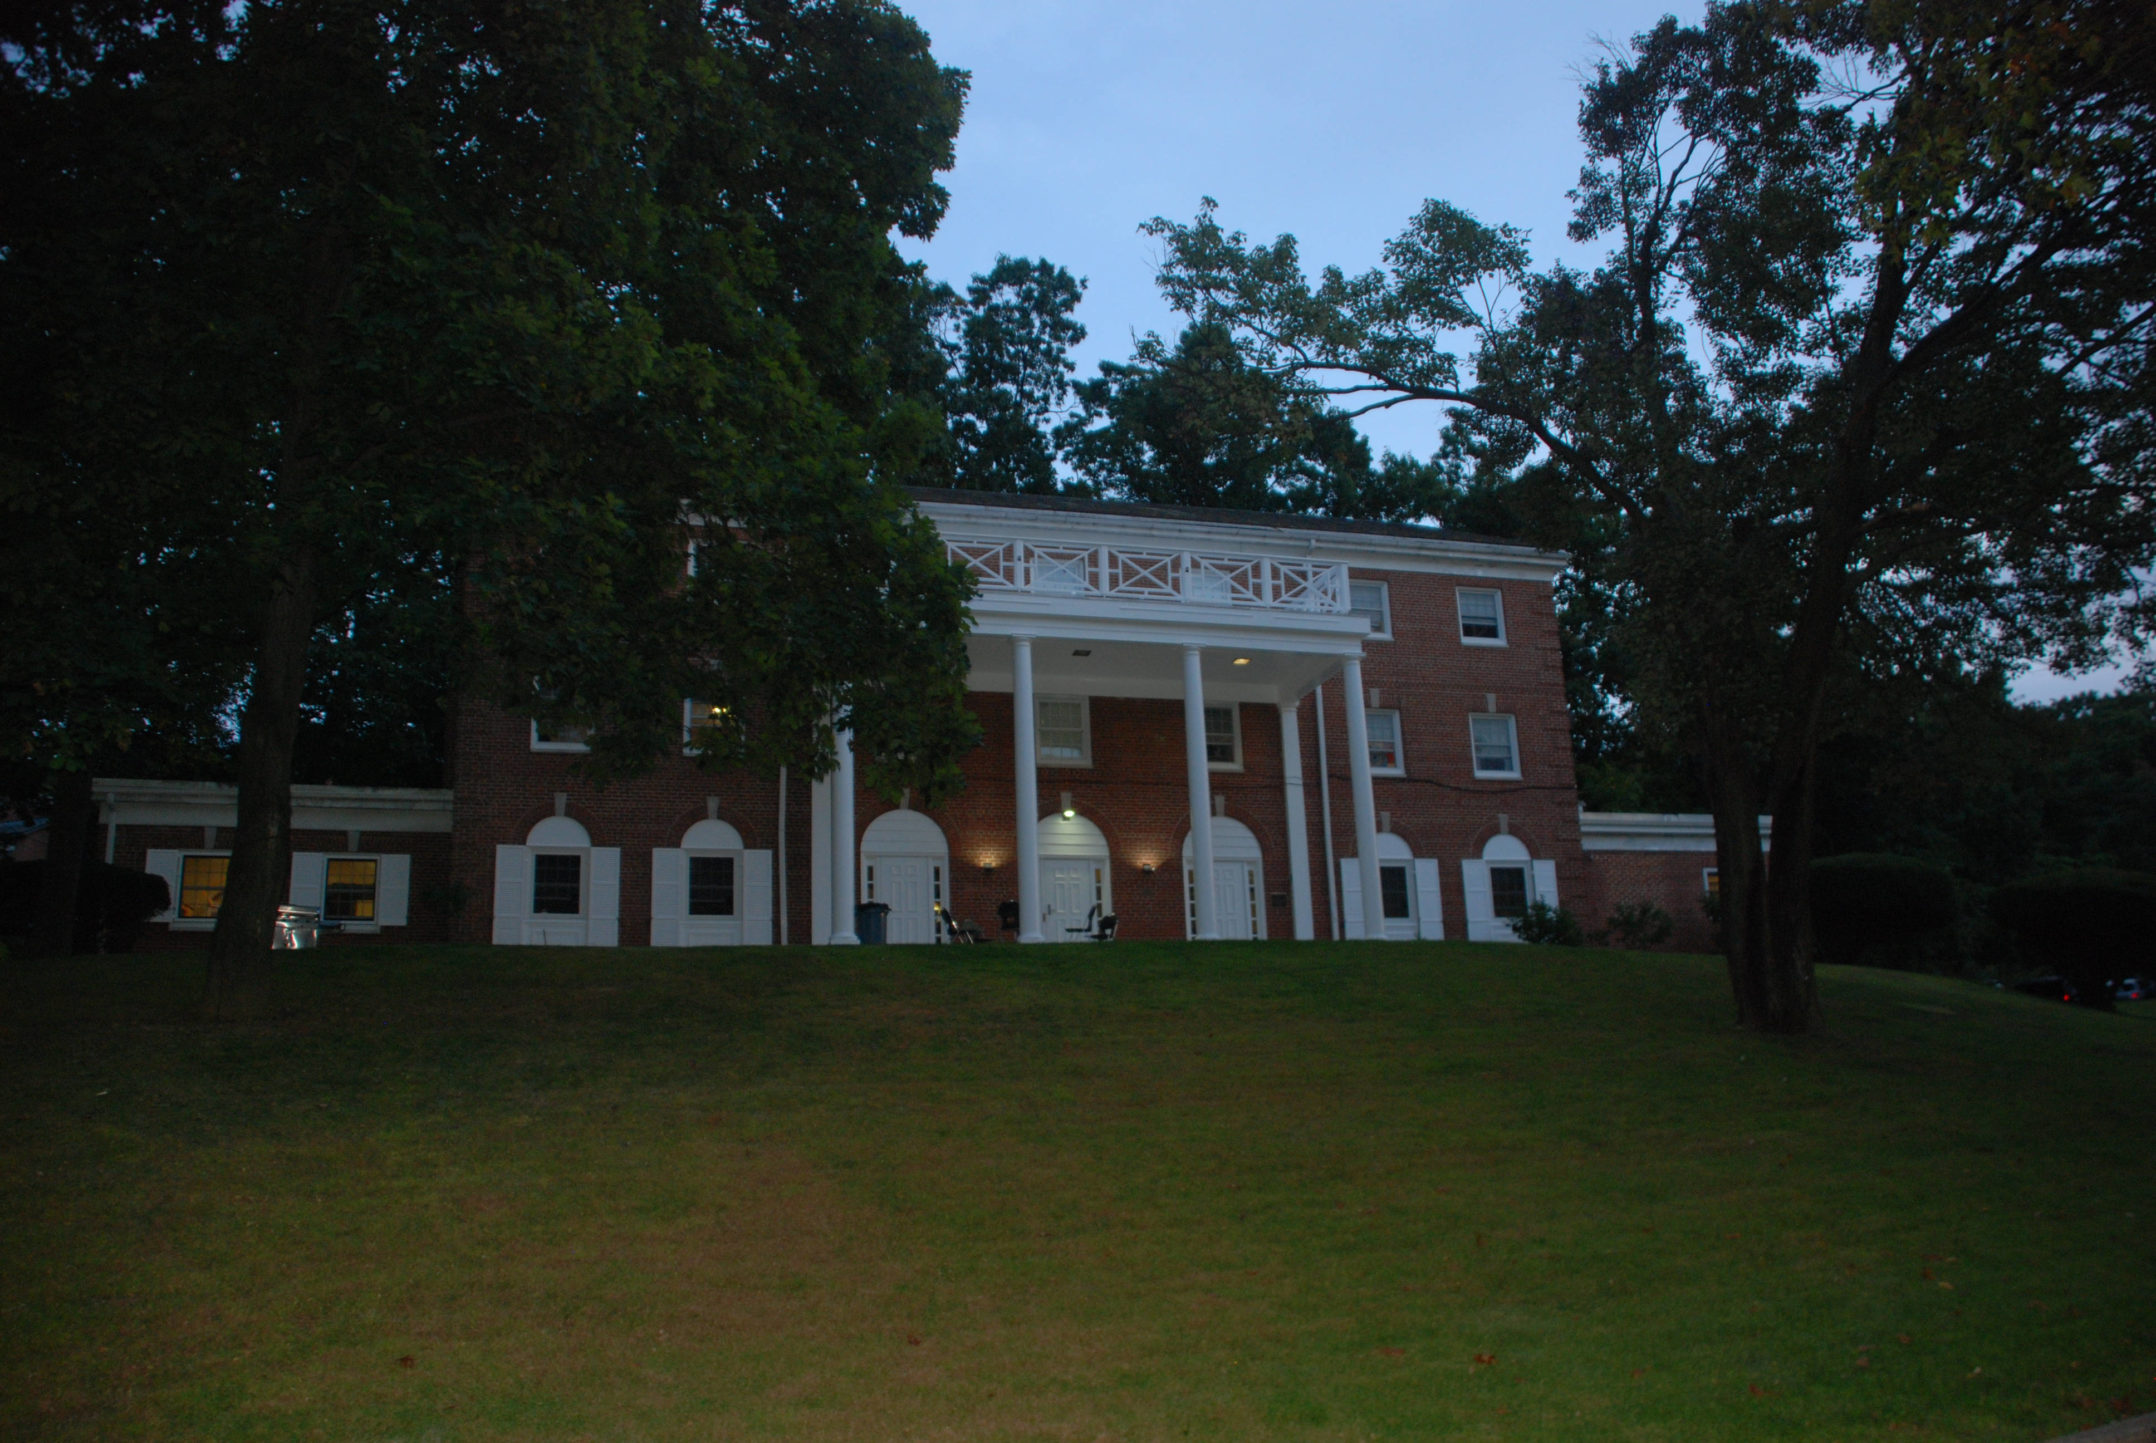 Phi Kappa Theta Fraternity Can Resume New Member Education After